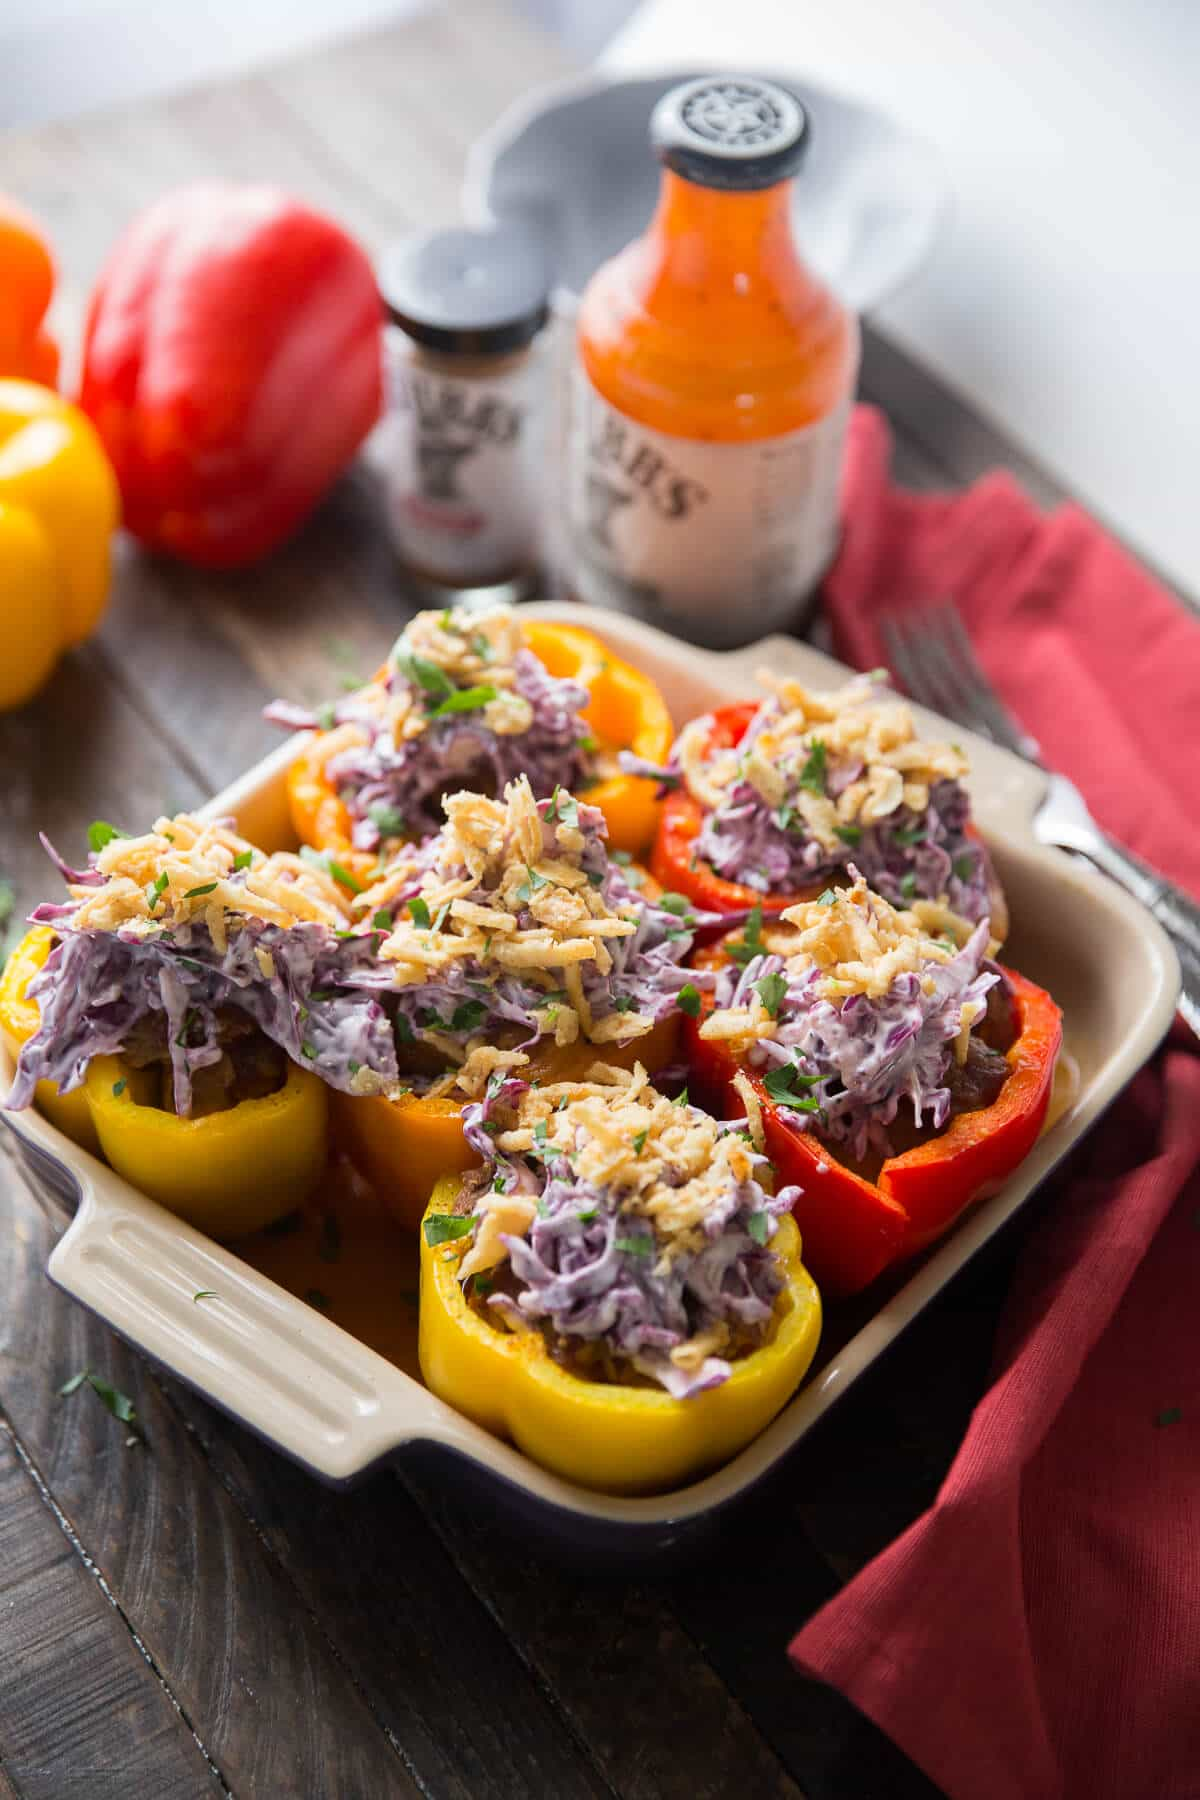 Love stuffed peppers? These Southwest stuffed peppers with their BBQ brisket is sure to be a hit!